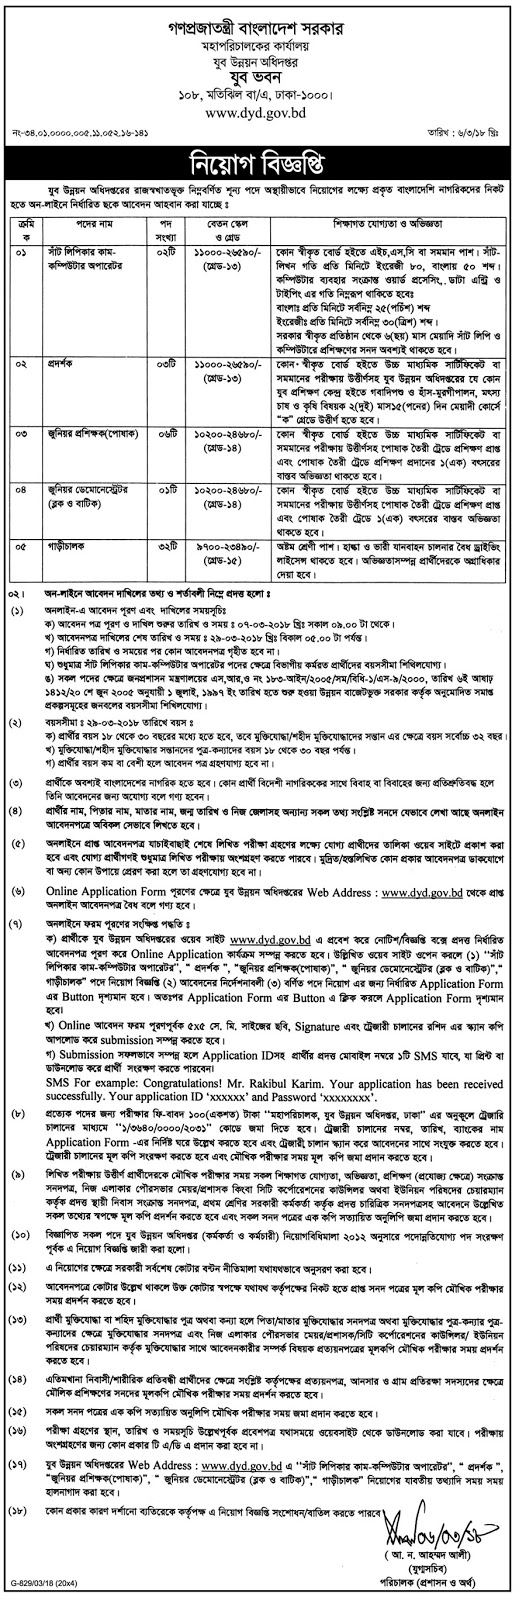 Department of Youth Development (DYD) Job Circular 2018